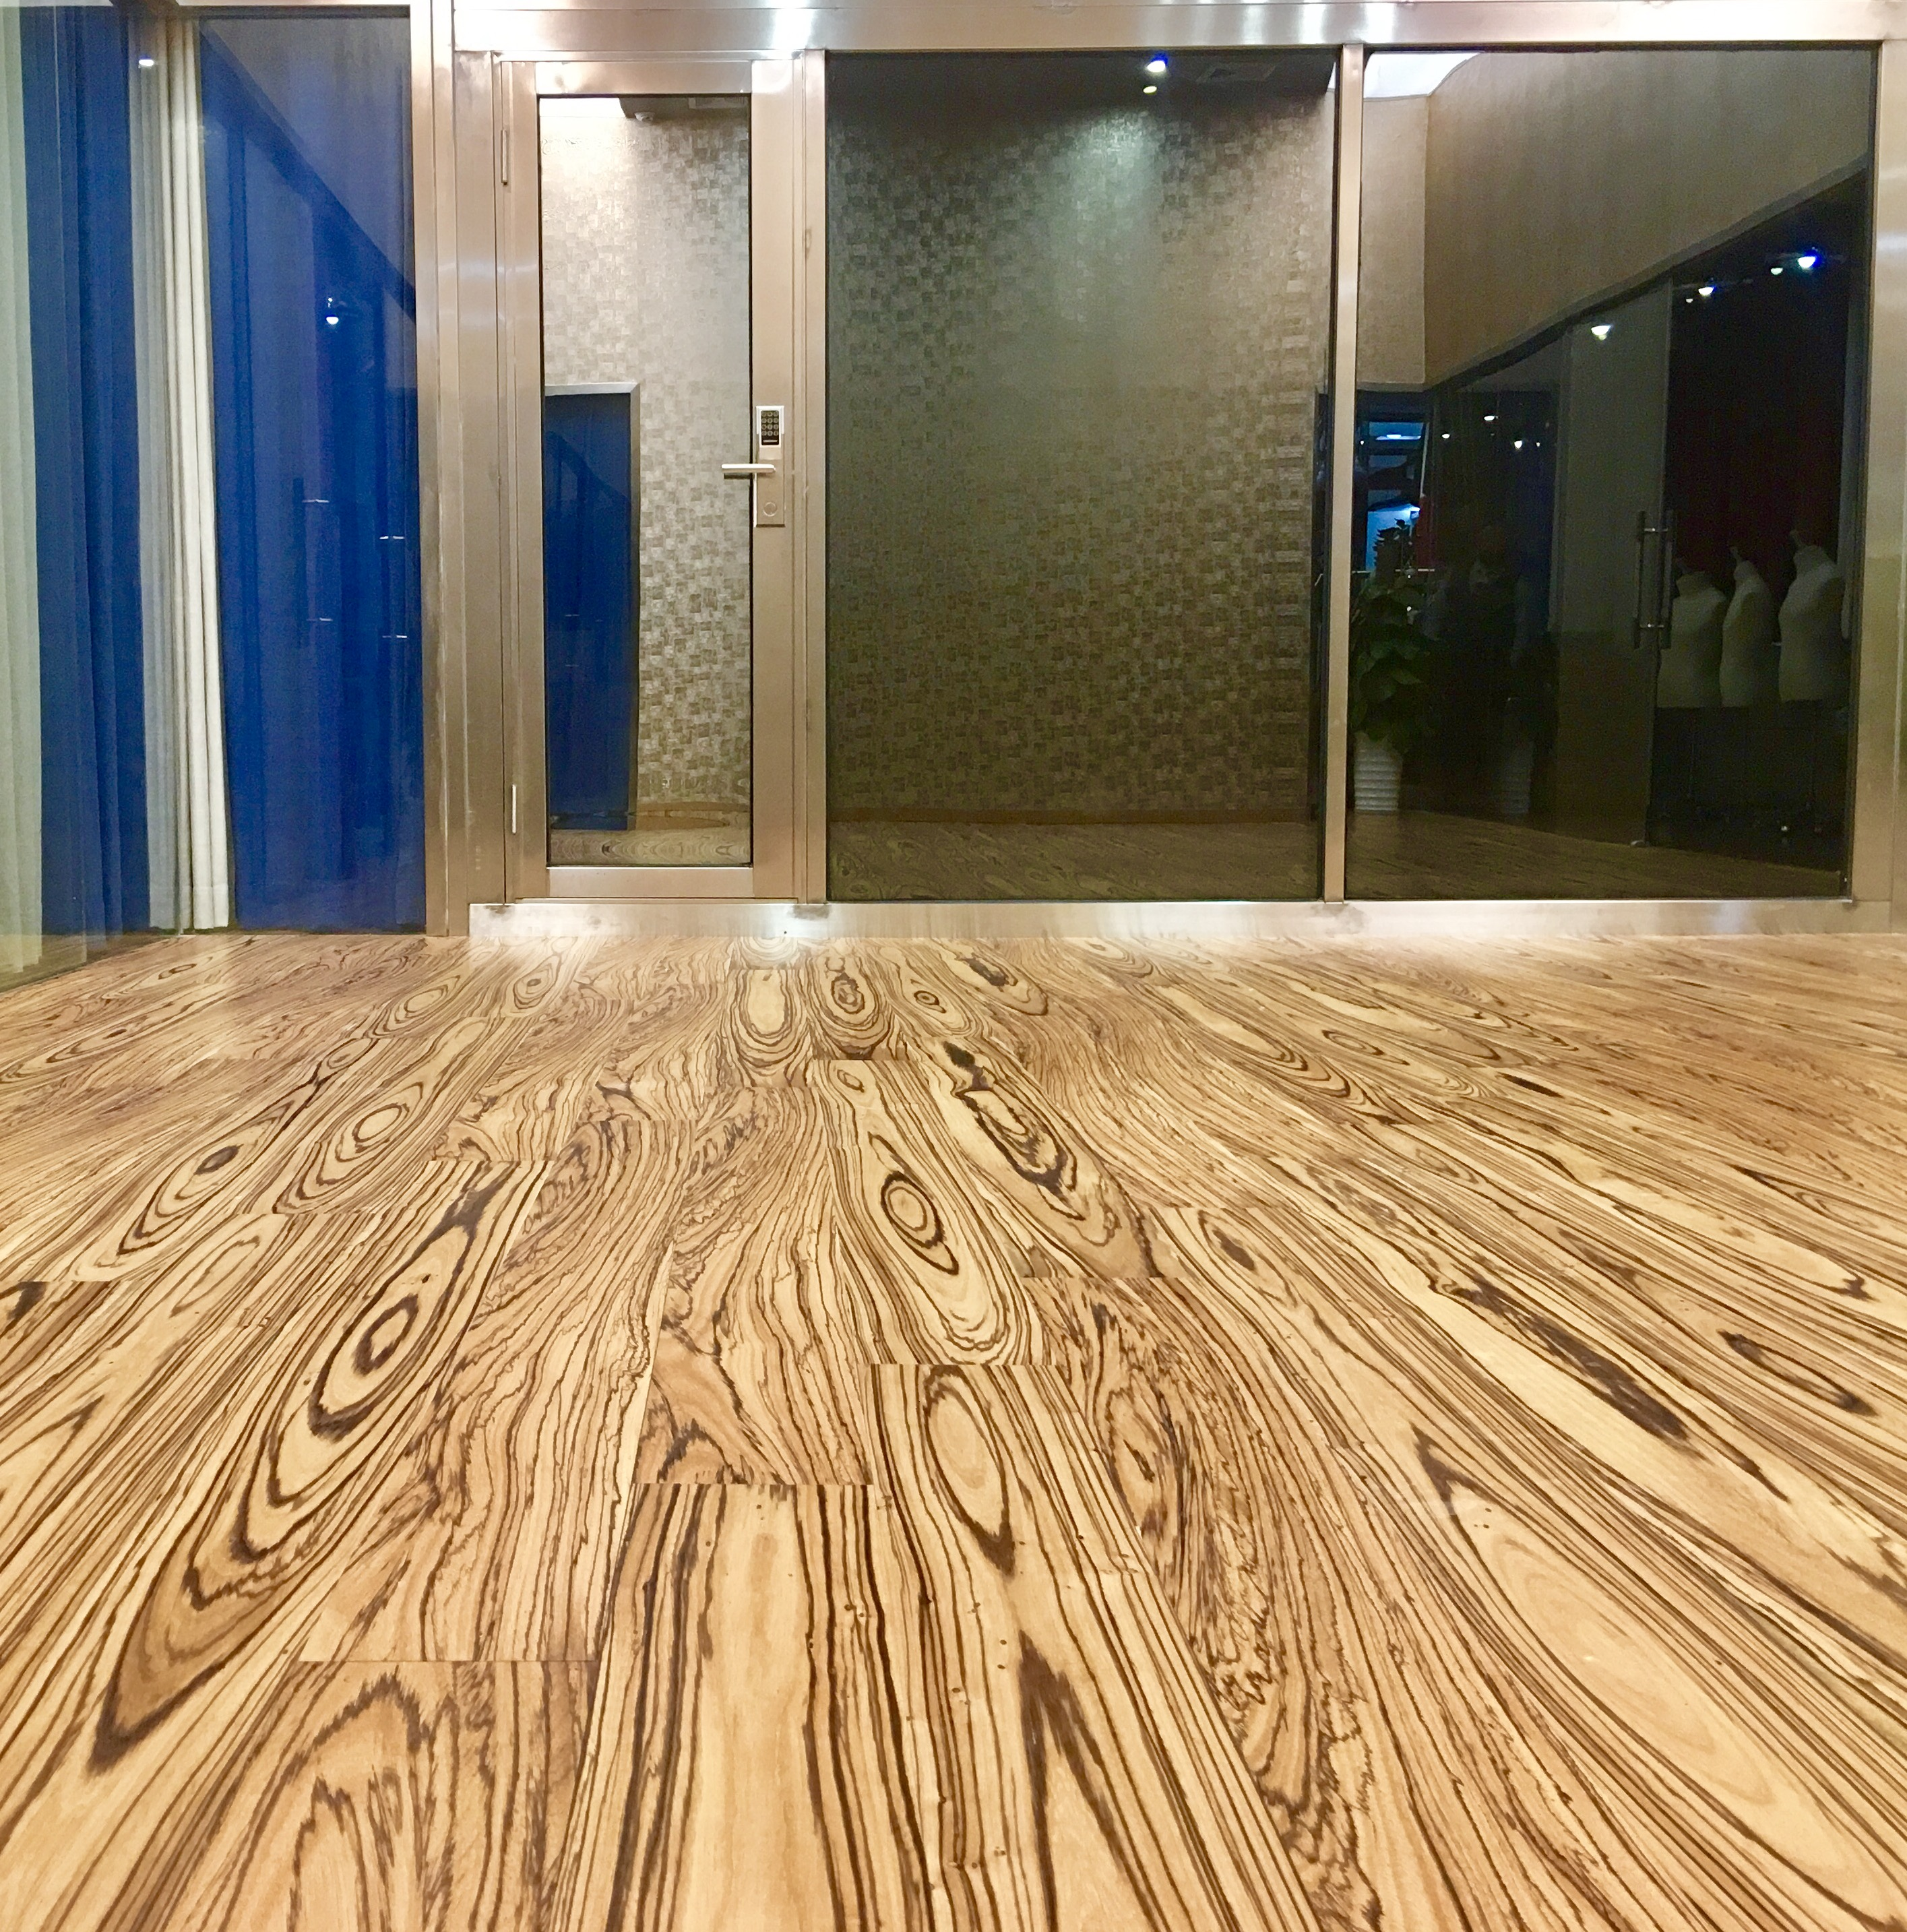 hardwood pros a details laminate cost down vs to of how cons locking glue construction full flooring can problems installation vinyl carpet float you floating express floor and engineered size floors